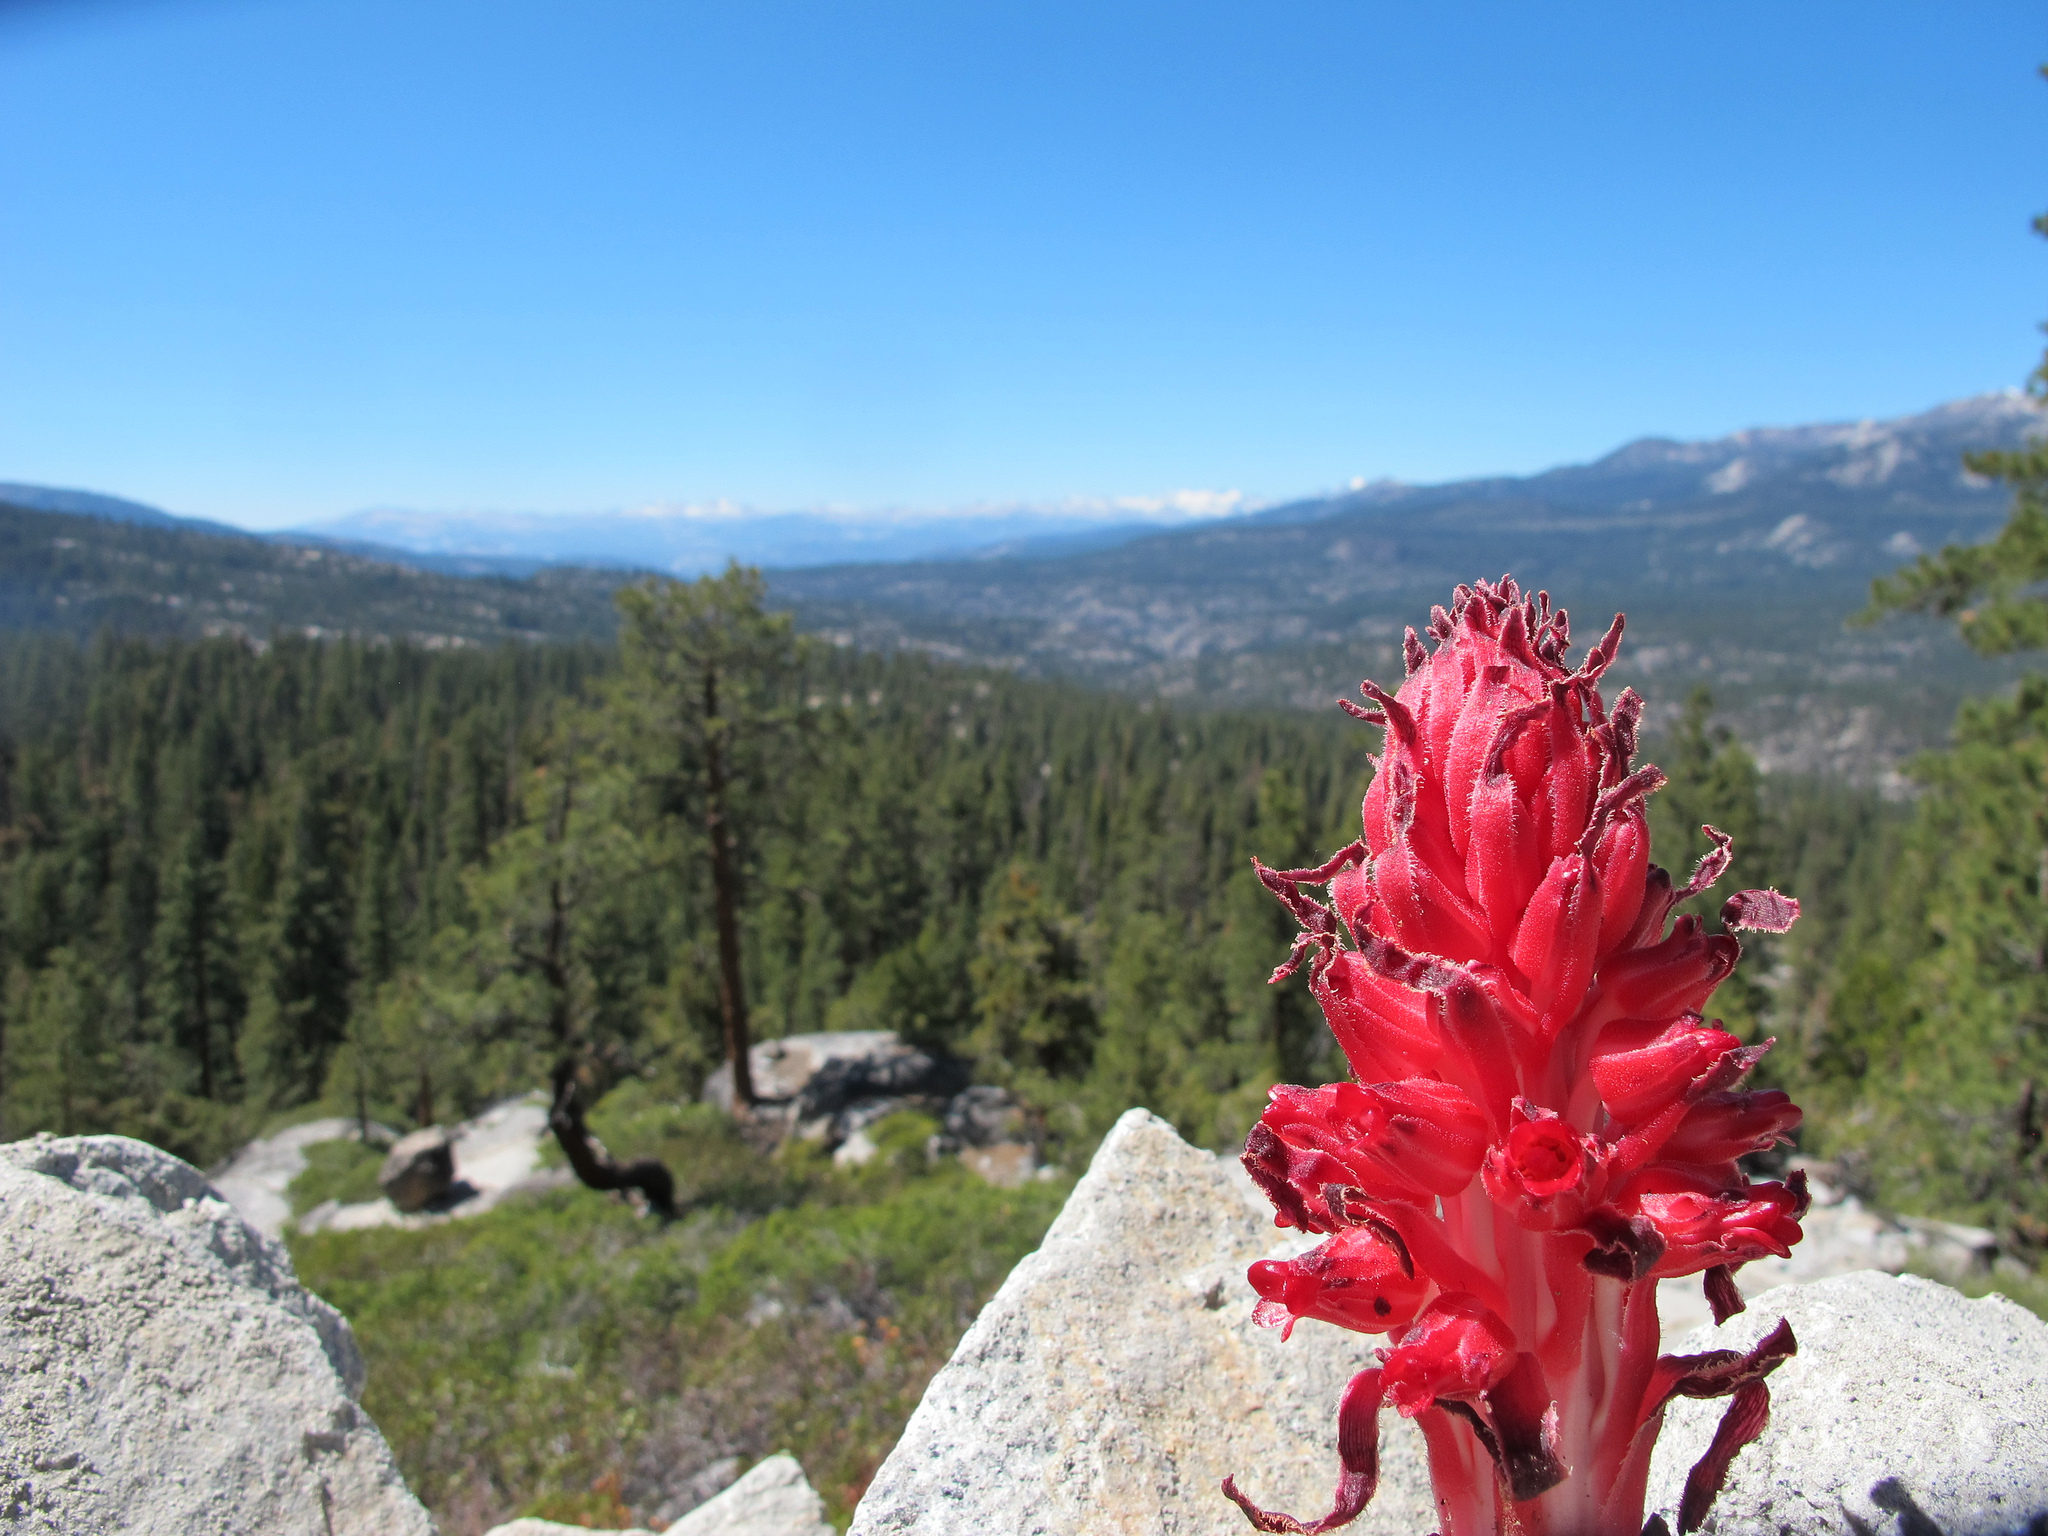 Snow plant in the Sierra